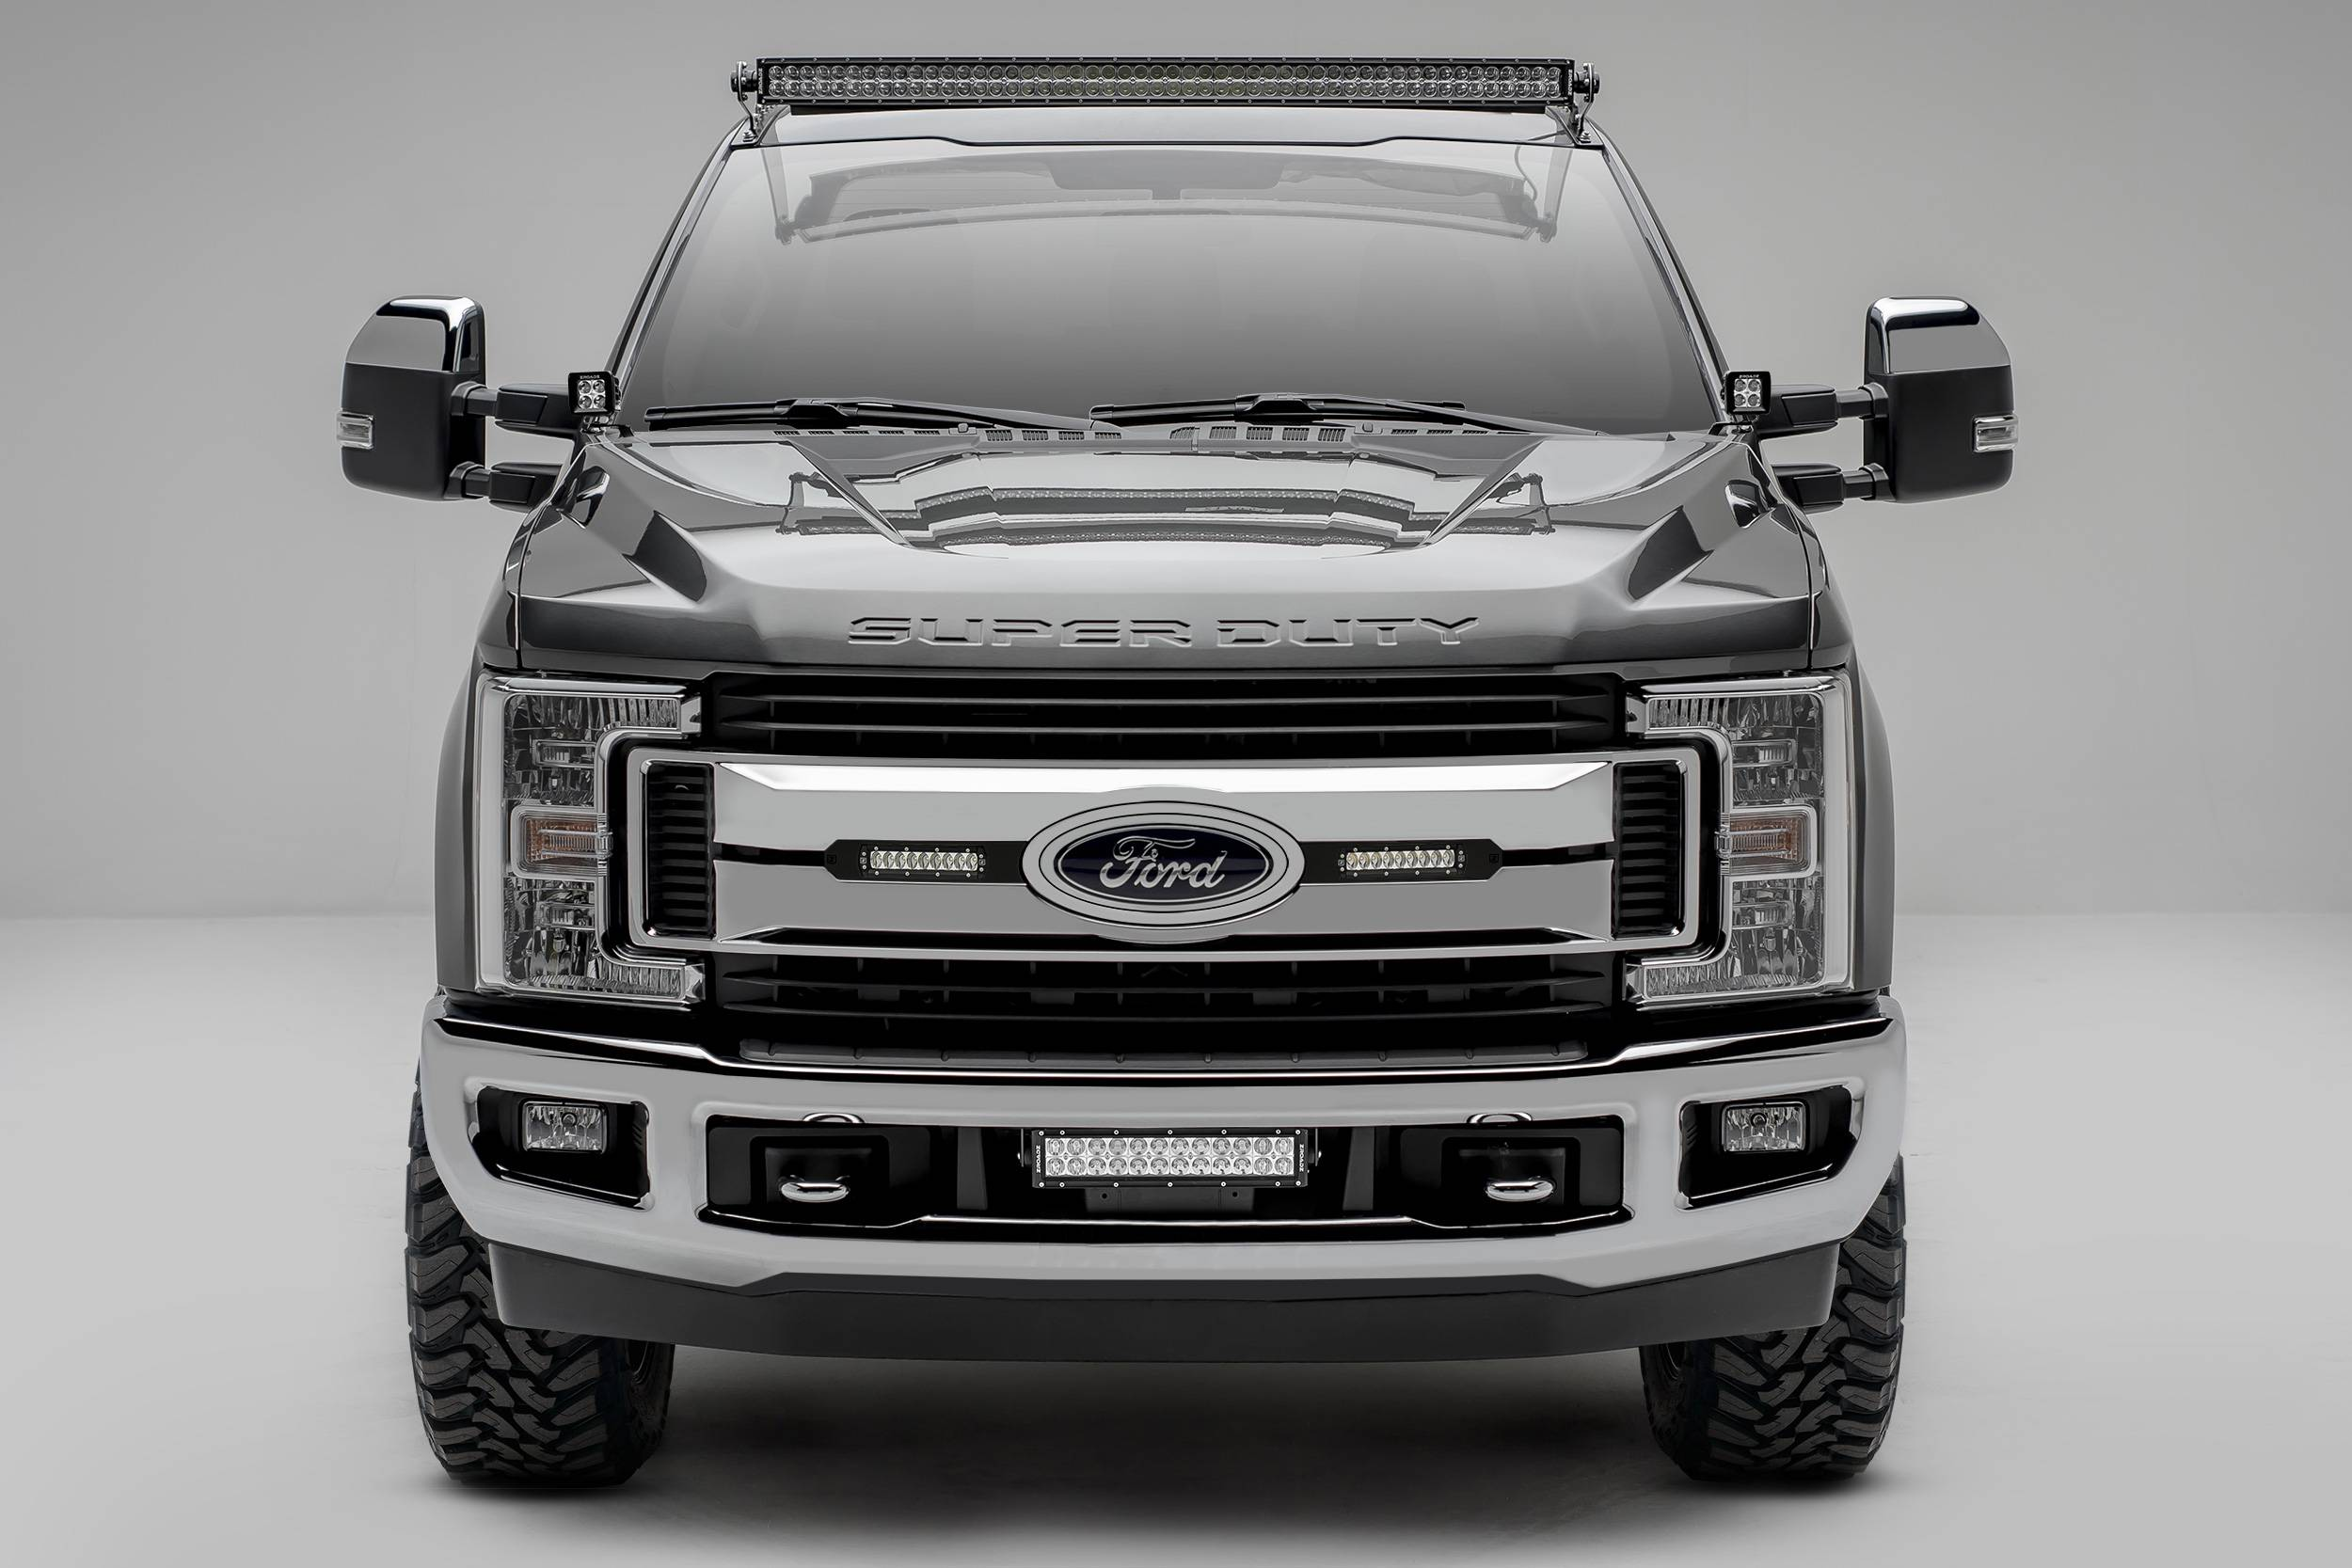 2017 2019 Ford Super Duty Xlt Oem Grille Led Kit Incl 2 6 Inch Led Straight Single Row Slim Light Bars Pn Z415571 Kit